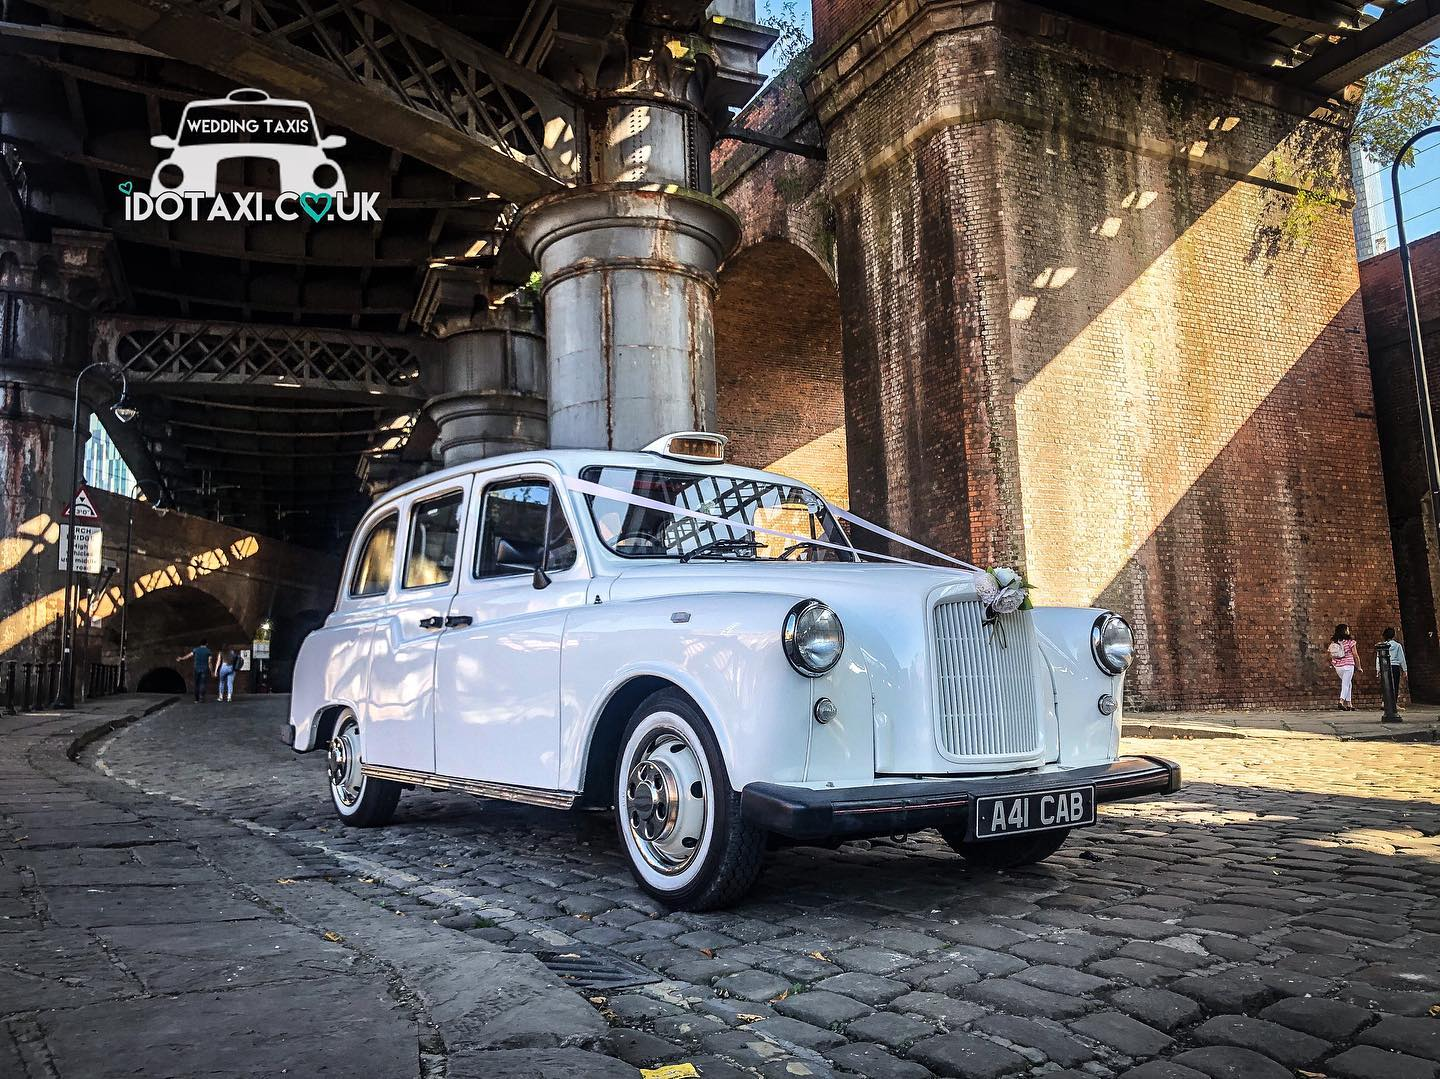 classic wedding car manchester taxi - Copy